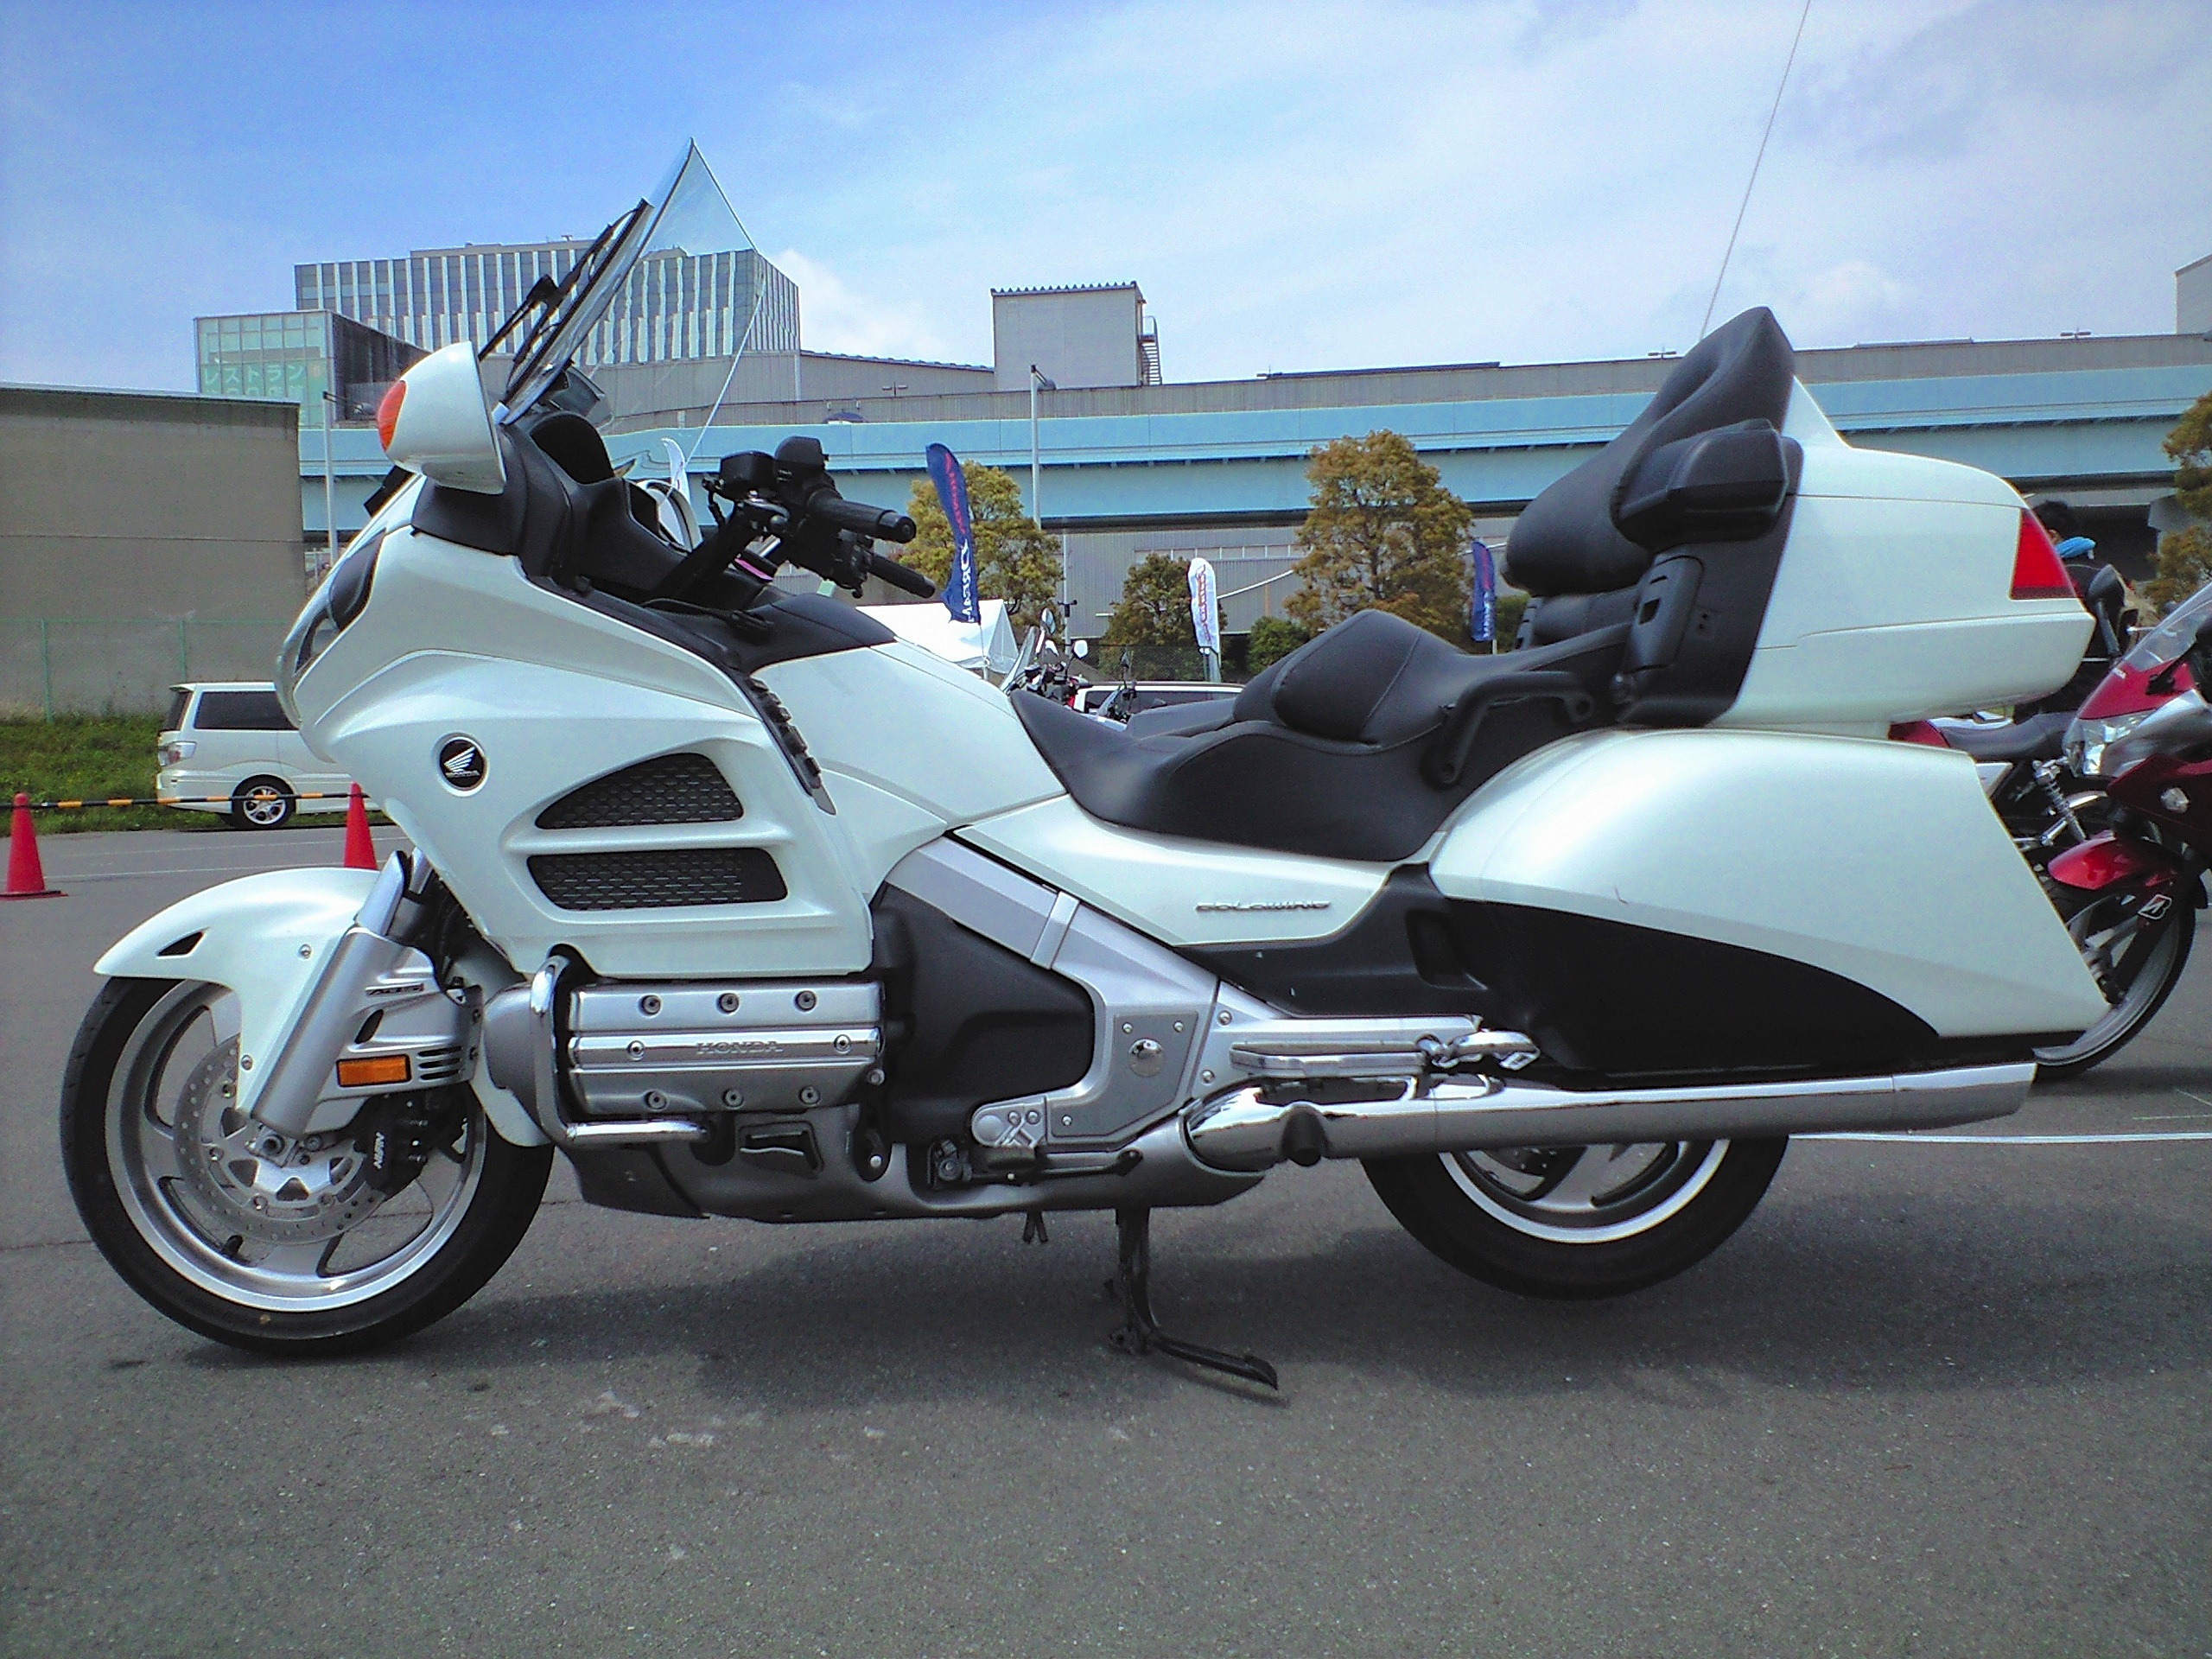 Honda GL 1800 Gold Wing 2013 images #83170